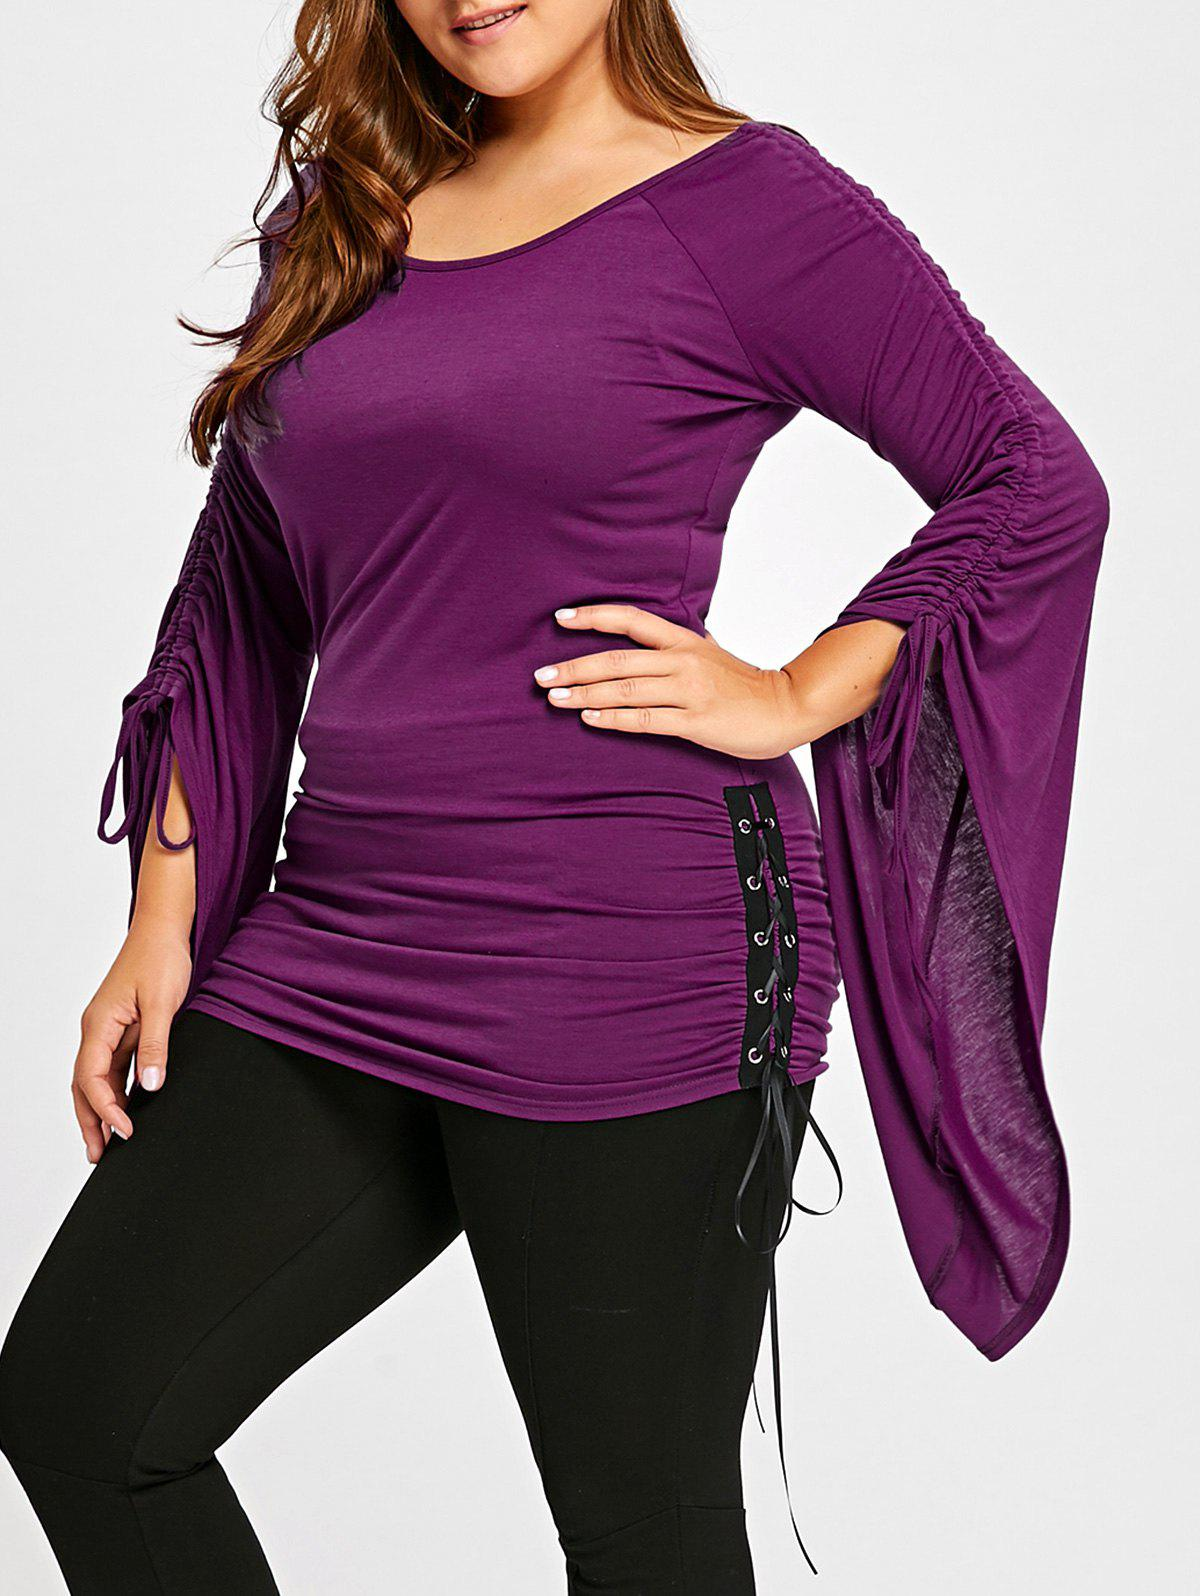 Plus Size Flare Sleeve Ruched TopWOMEN<br><br>Size: 5XL; Color: PURPLE; Material: Polyester,Spandex; Shirt Length: Long; Sleeve Length: Full; Collar: Scoop Neck; Style: Casual; Season: Fall,Spring; Pattern Type: Solid; Weight: 0.4000kg; Package Contents: 1 x Top;